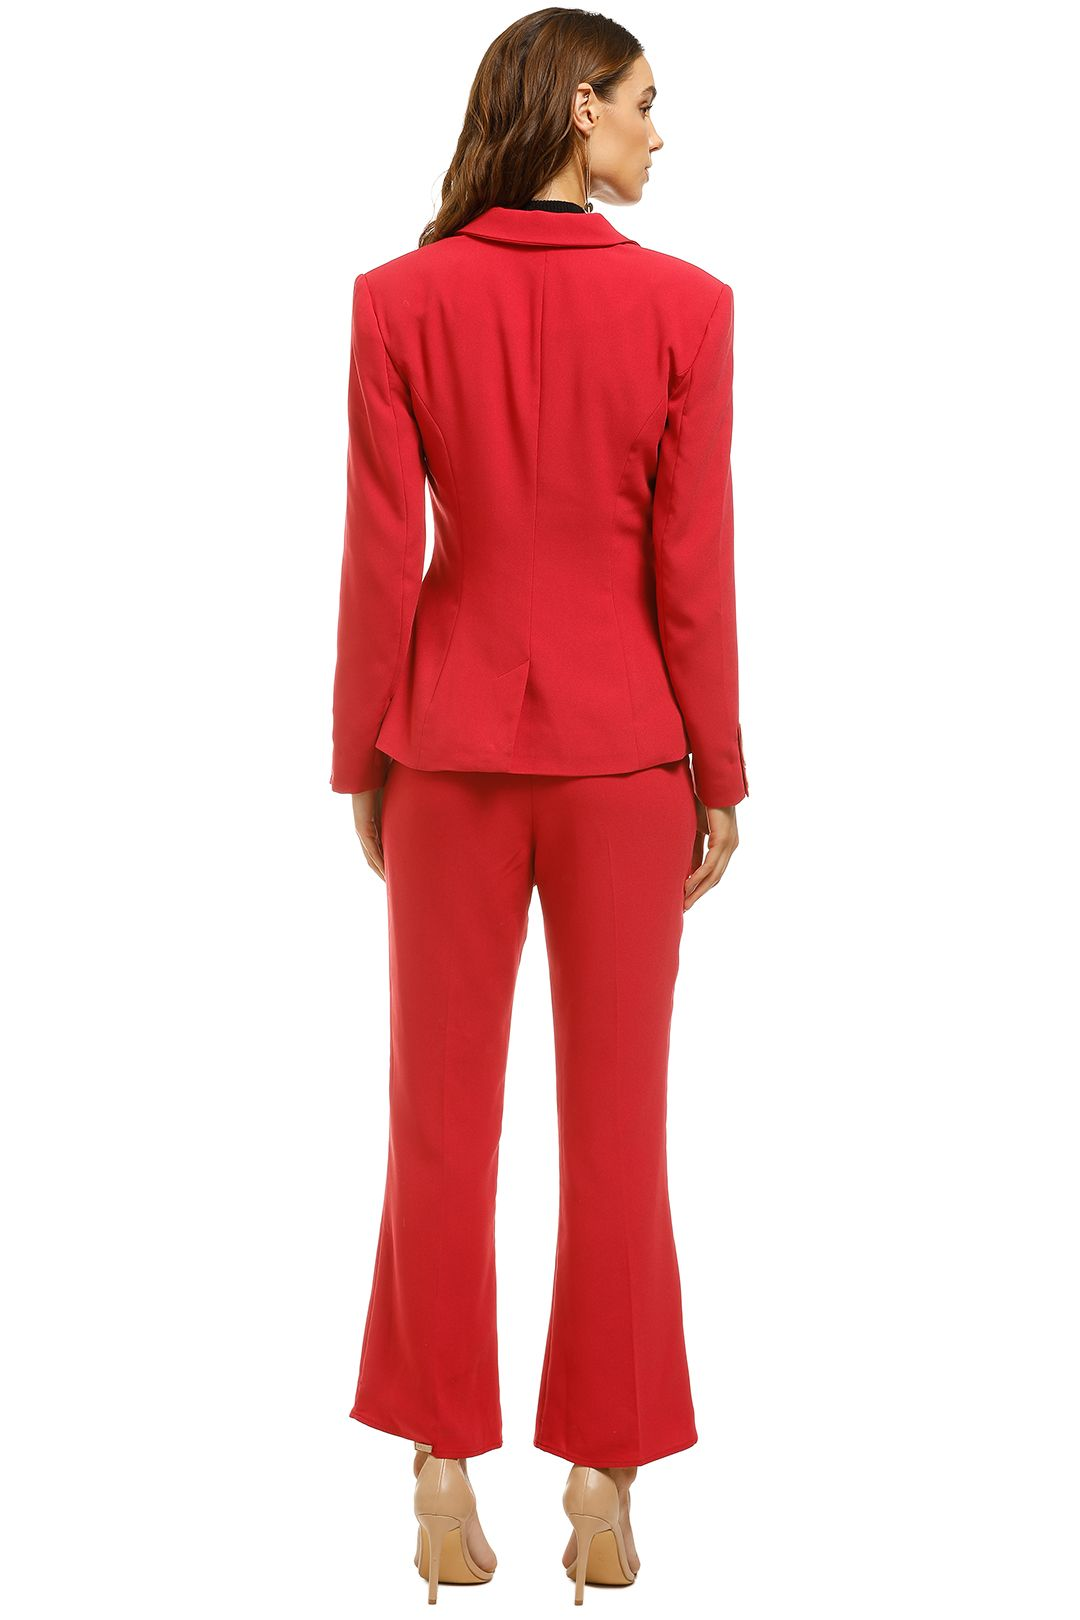 Keepsake-The-Label-Estate-Blazer-and-Pant-Set-Scarlet-Back